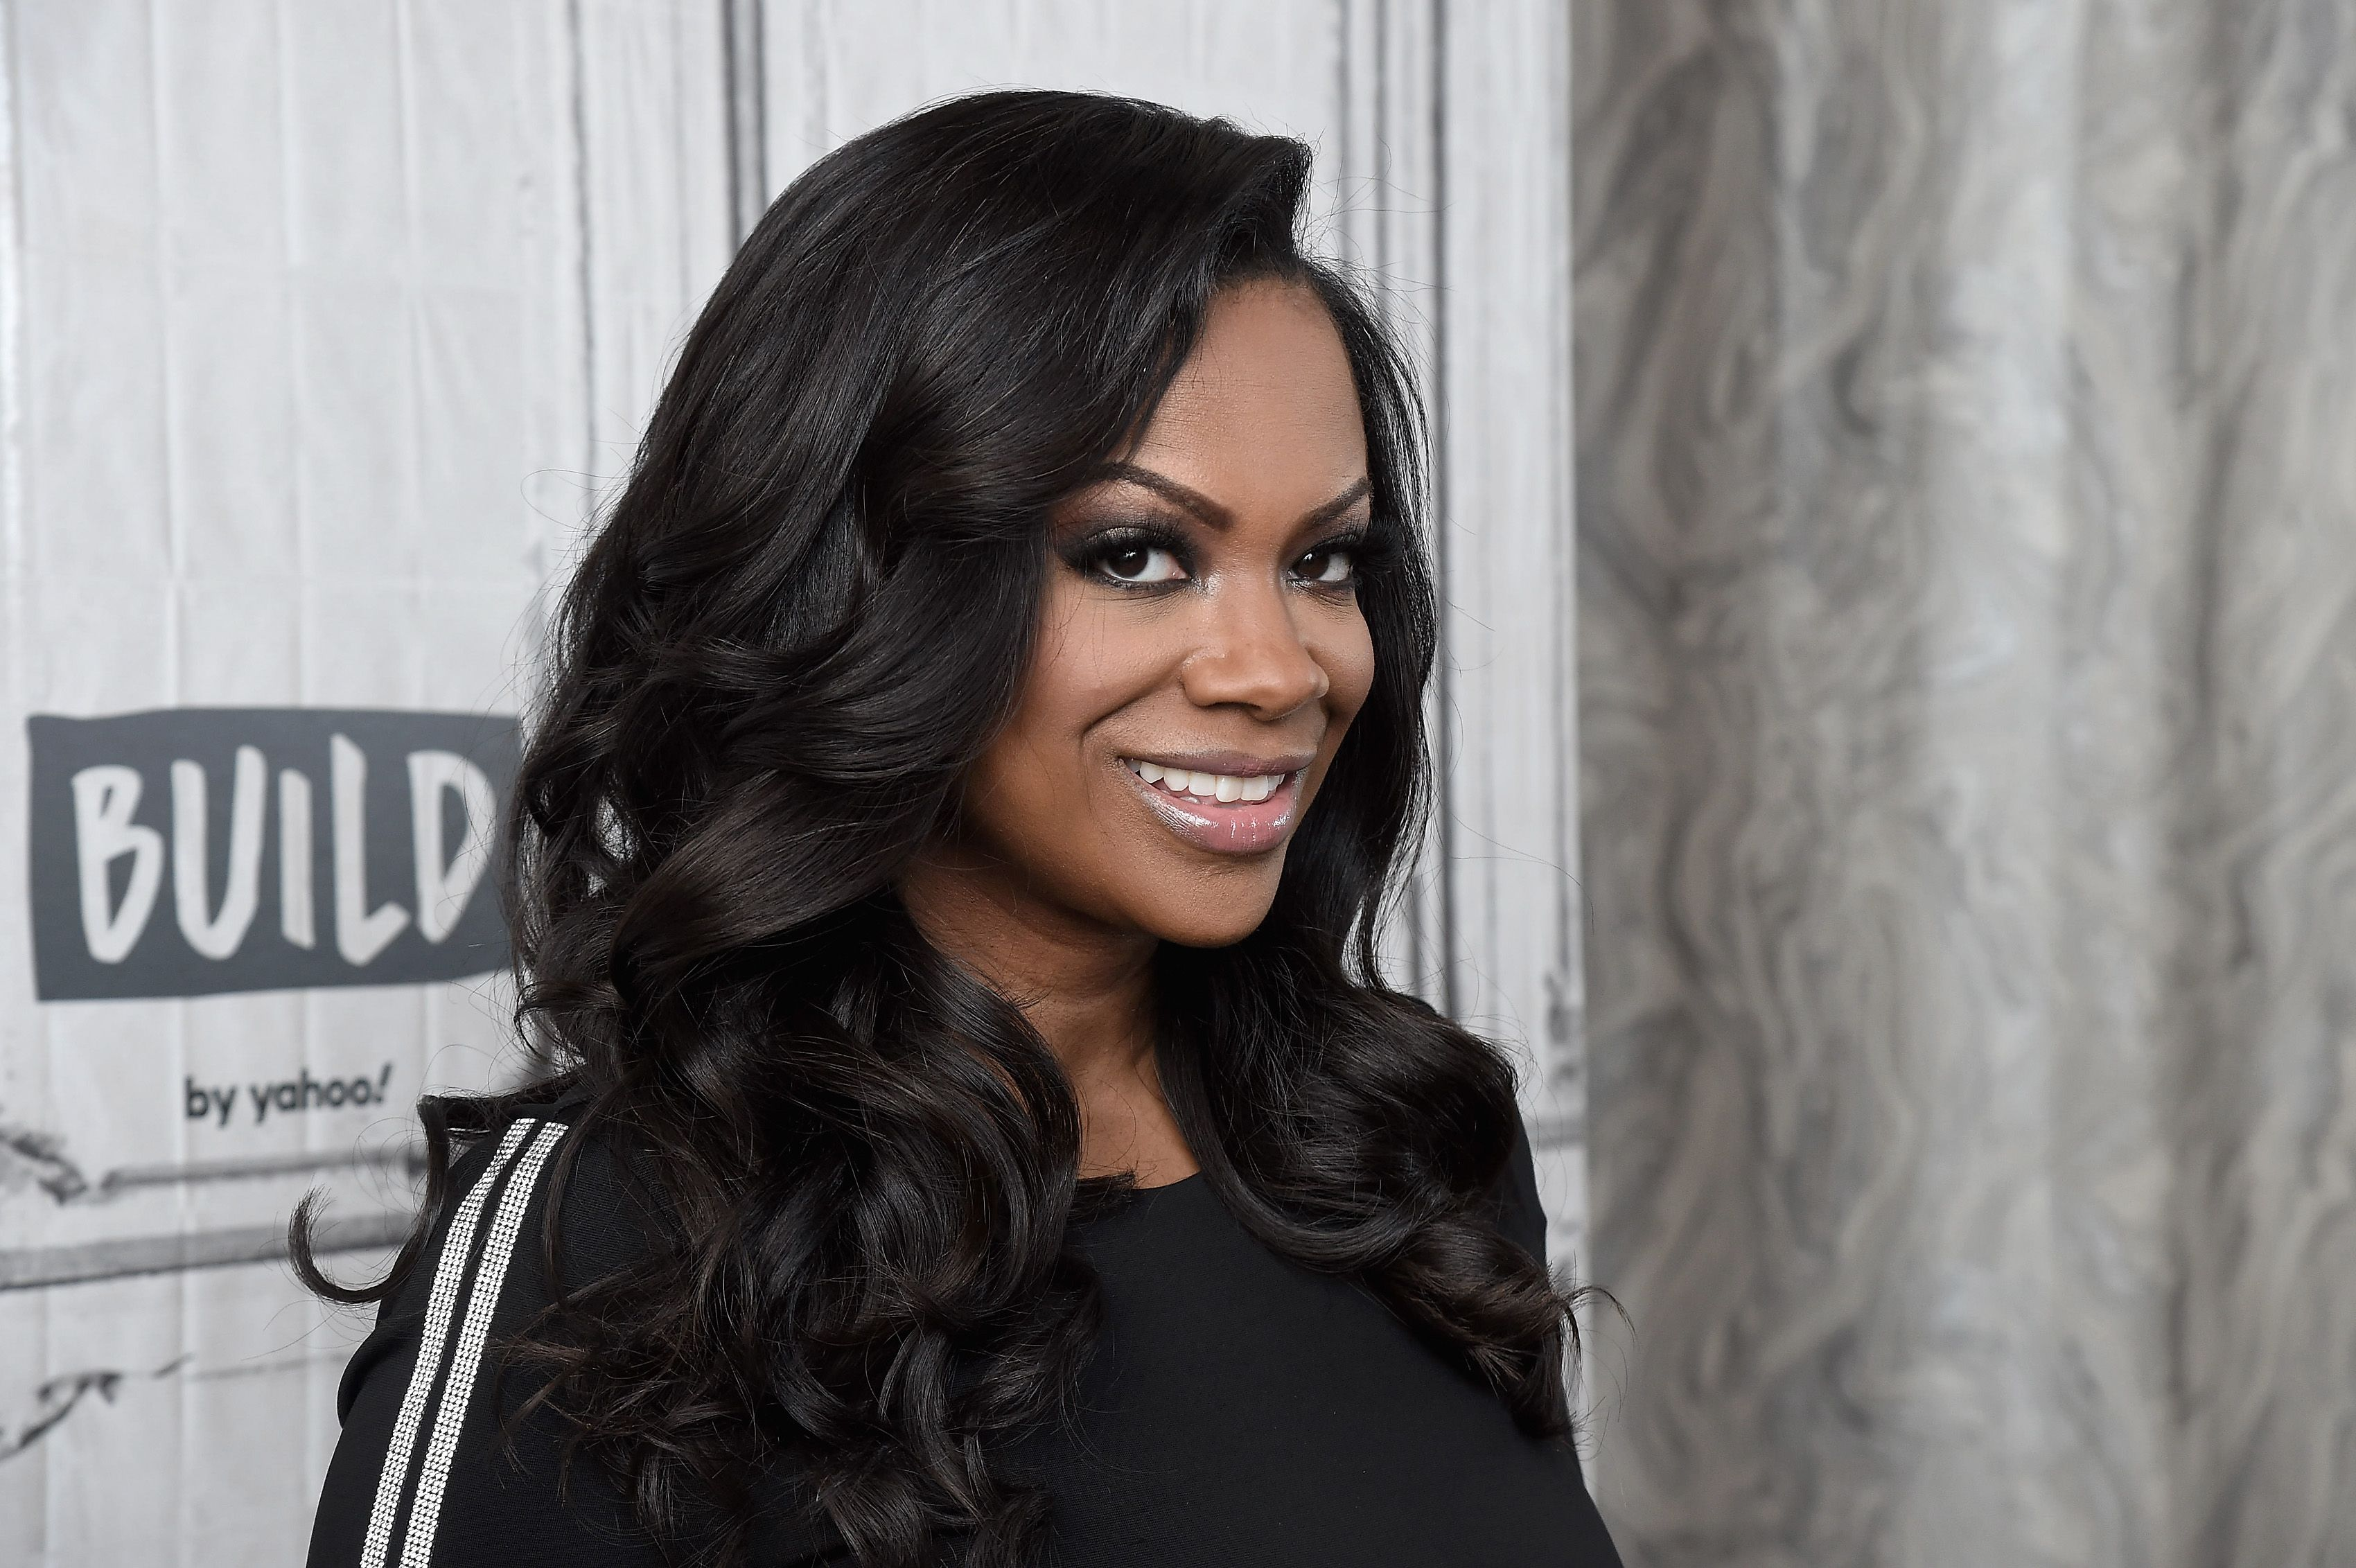 """Kandi Burruss visits the Build Series to discuss """"The Real Housewives of Atlanta"""" at Build Studio on January 13, 2020 in New York City. 